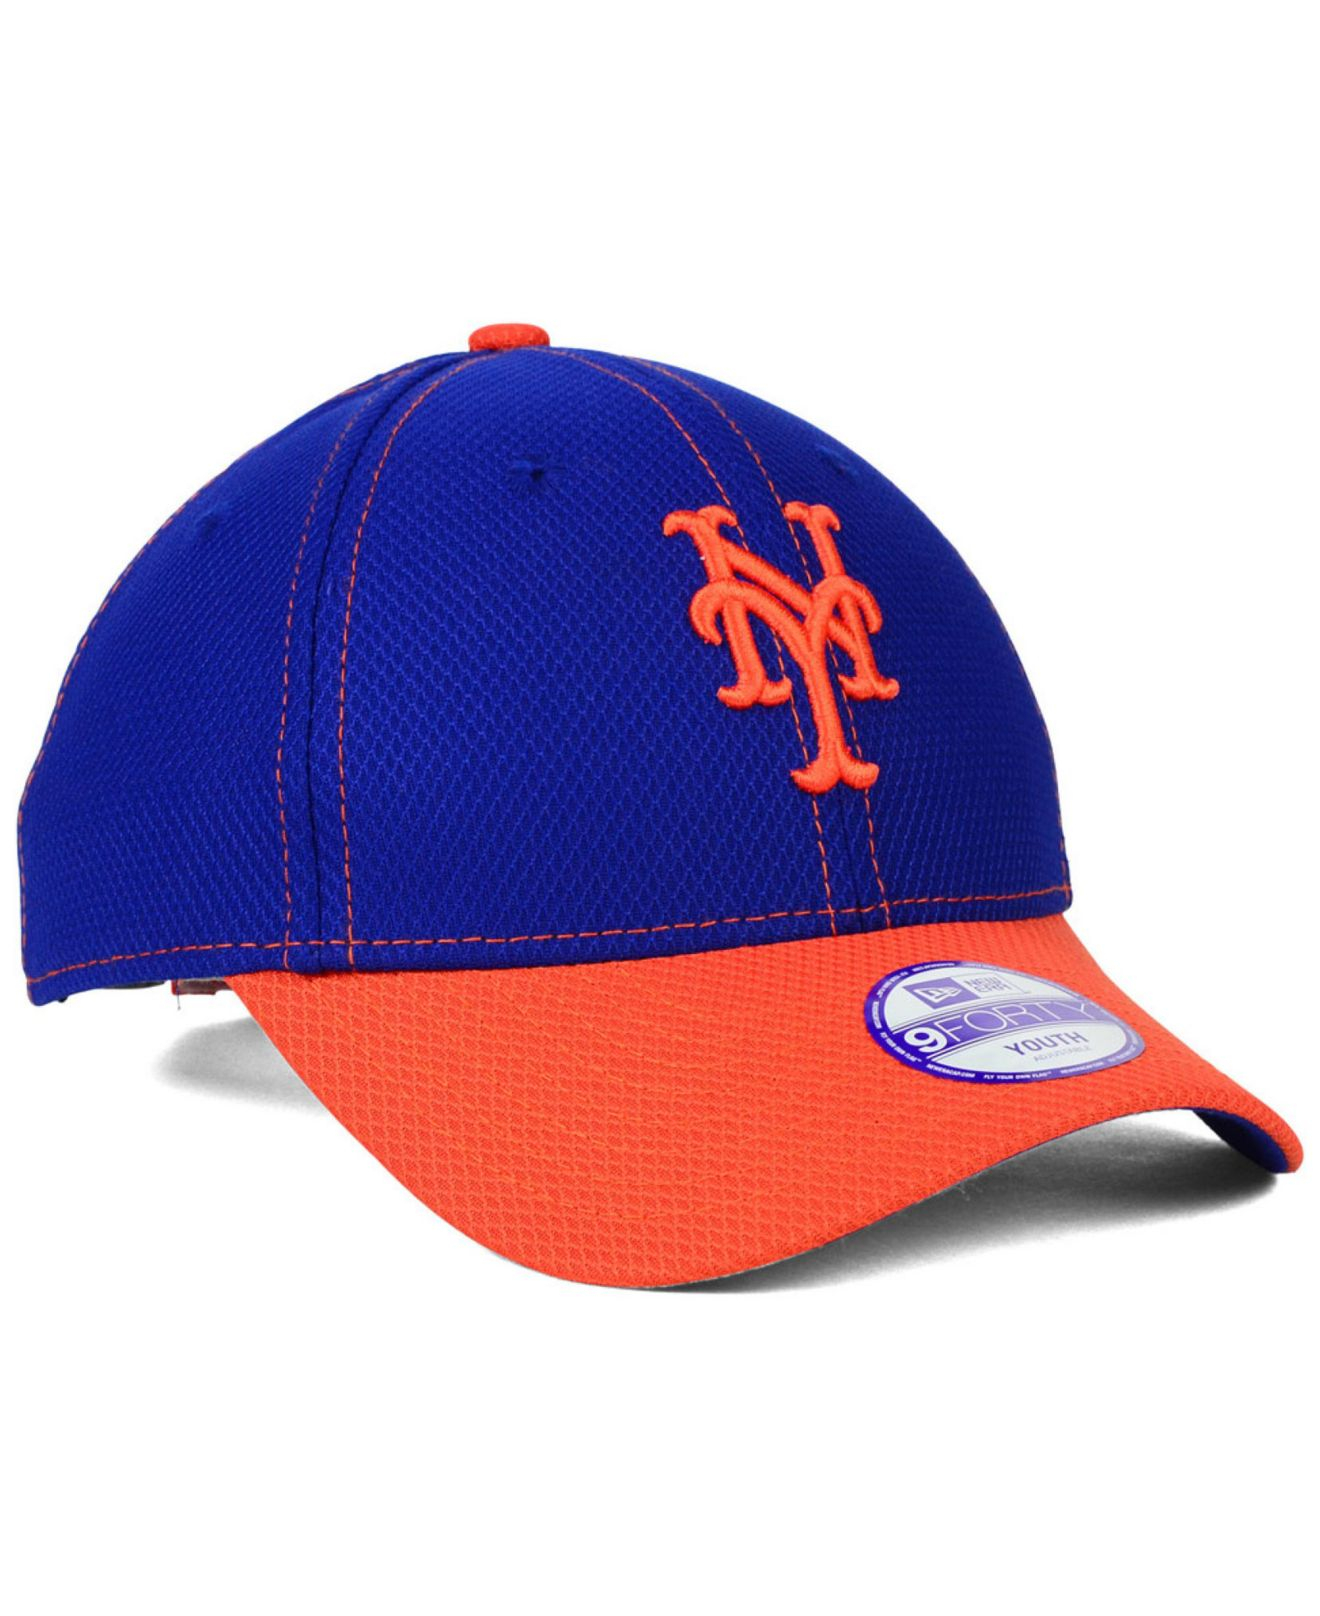 check out 2a07e a82d5 ... italy bucket hats booney safari hats at fansedge ktz kids new york mets  junior fundamental 9forty